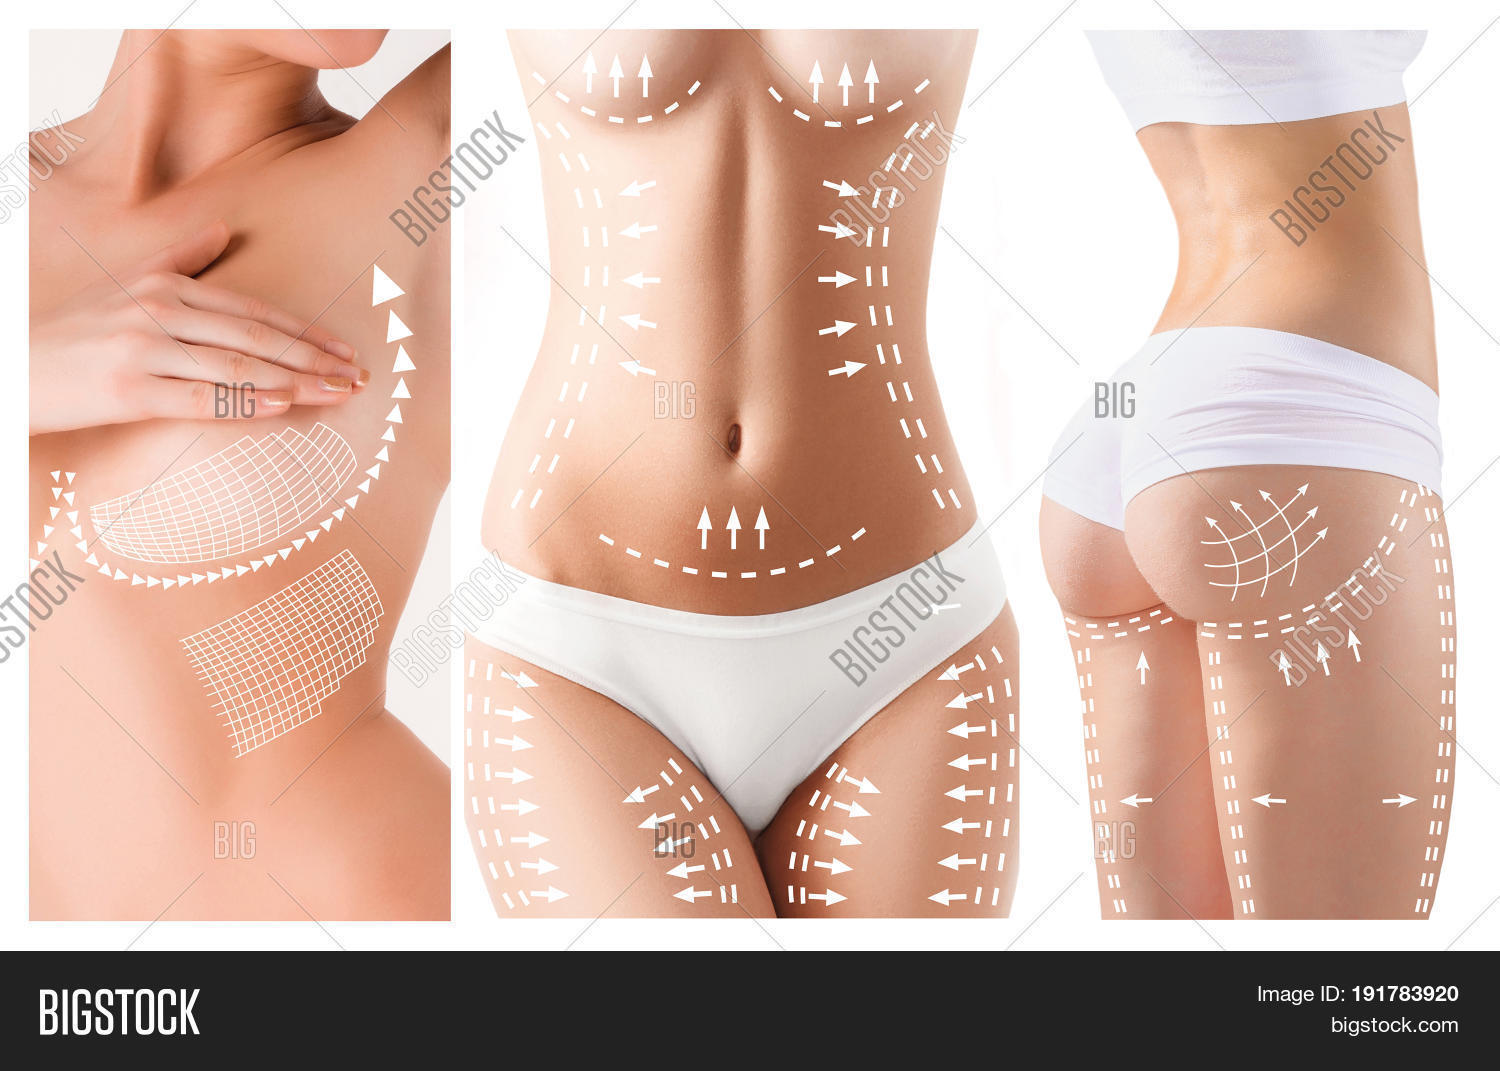 Cellulite Removal Plan Image & Photo (Free Trial) | Bigstock